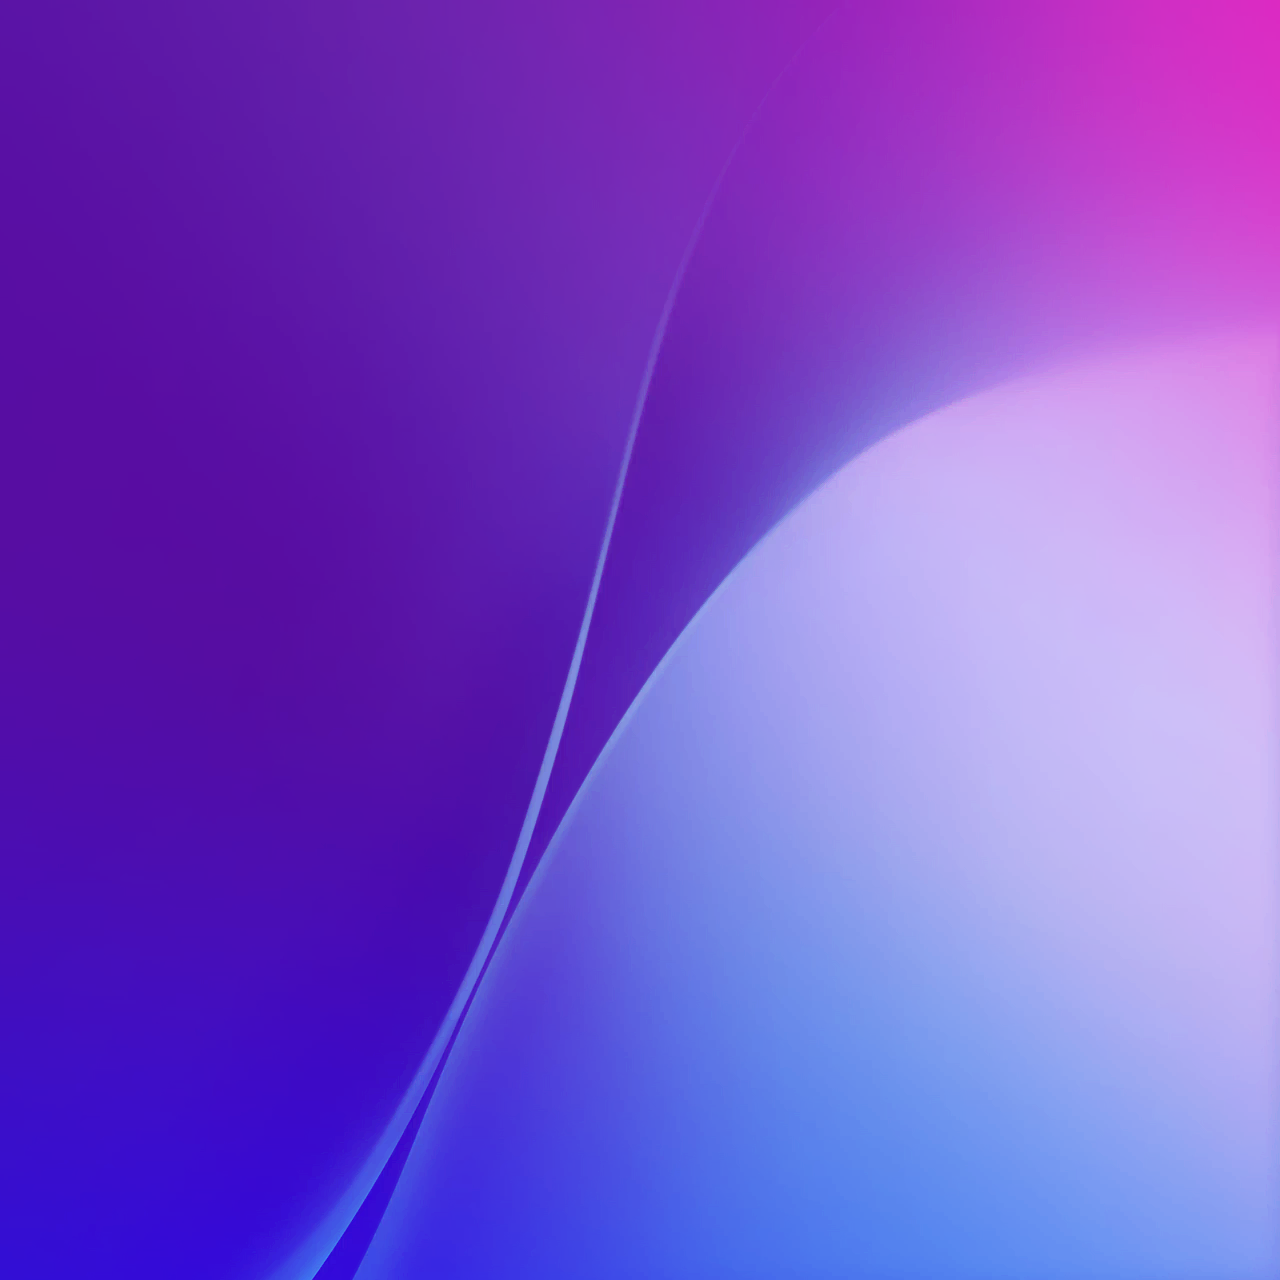 Galaxy J2 Wallpaper Posted By Ryan Simpson